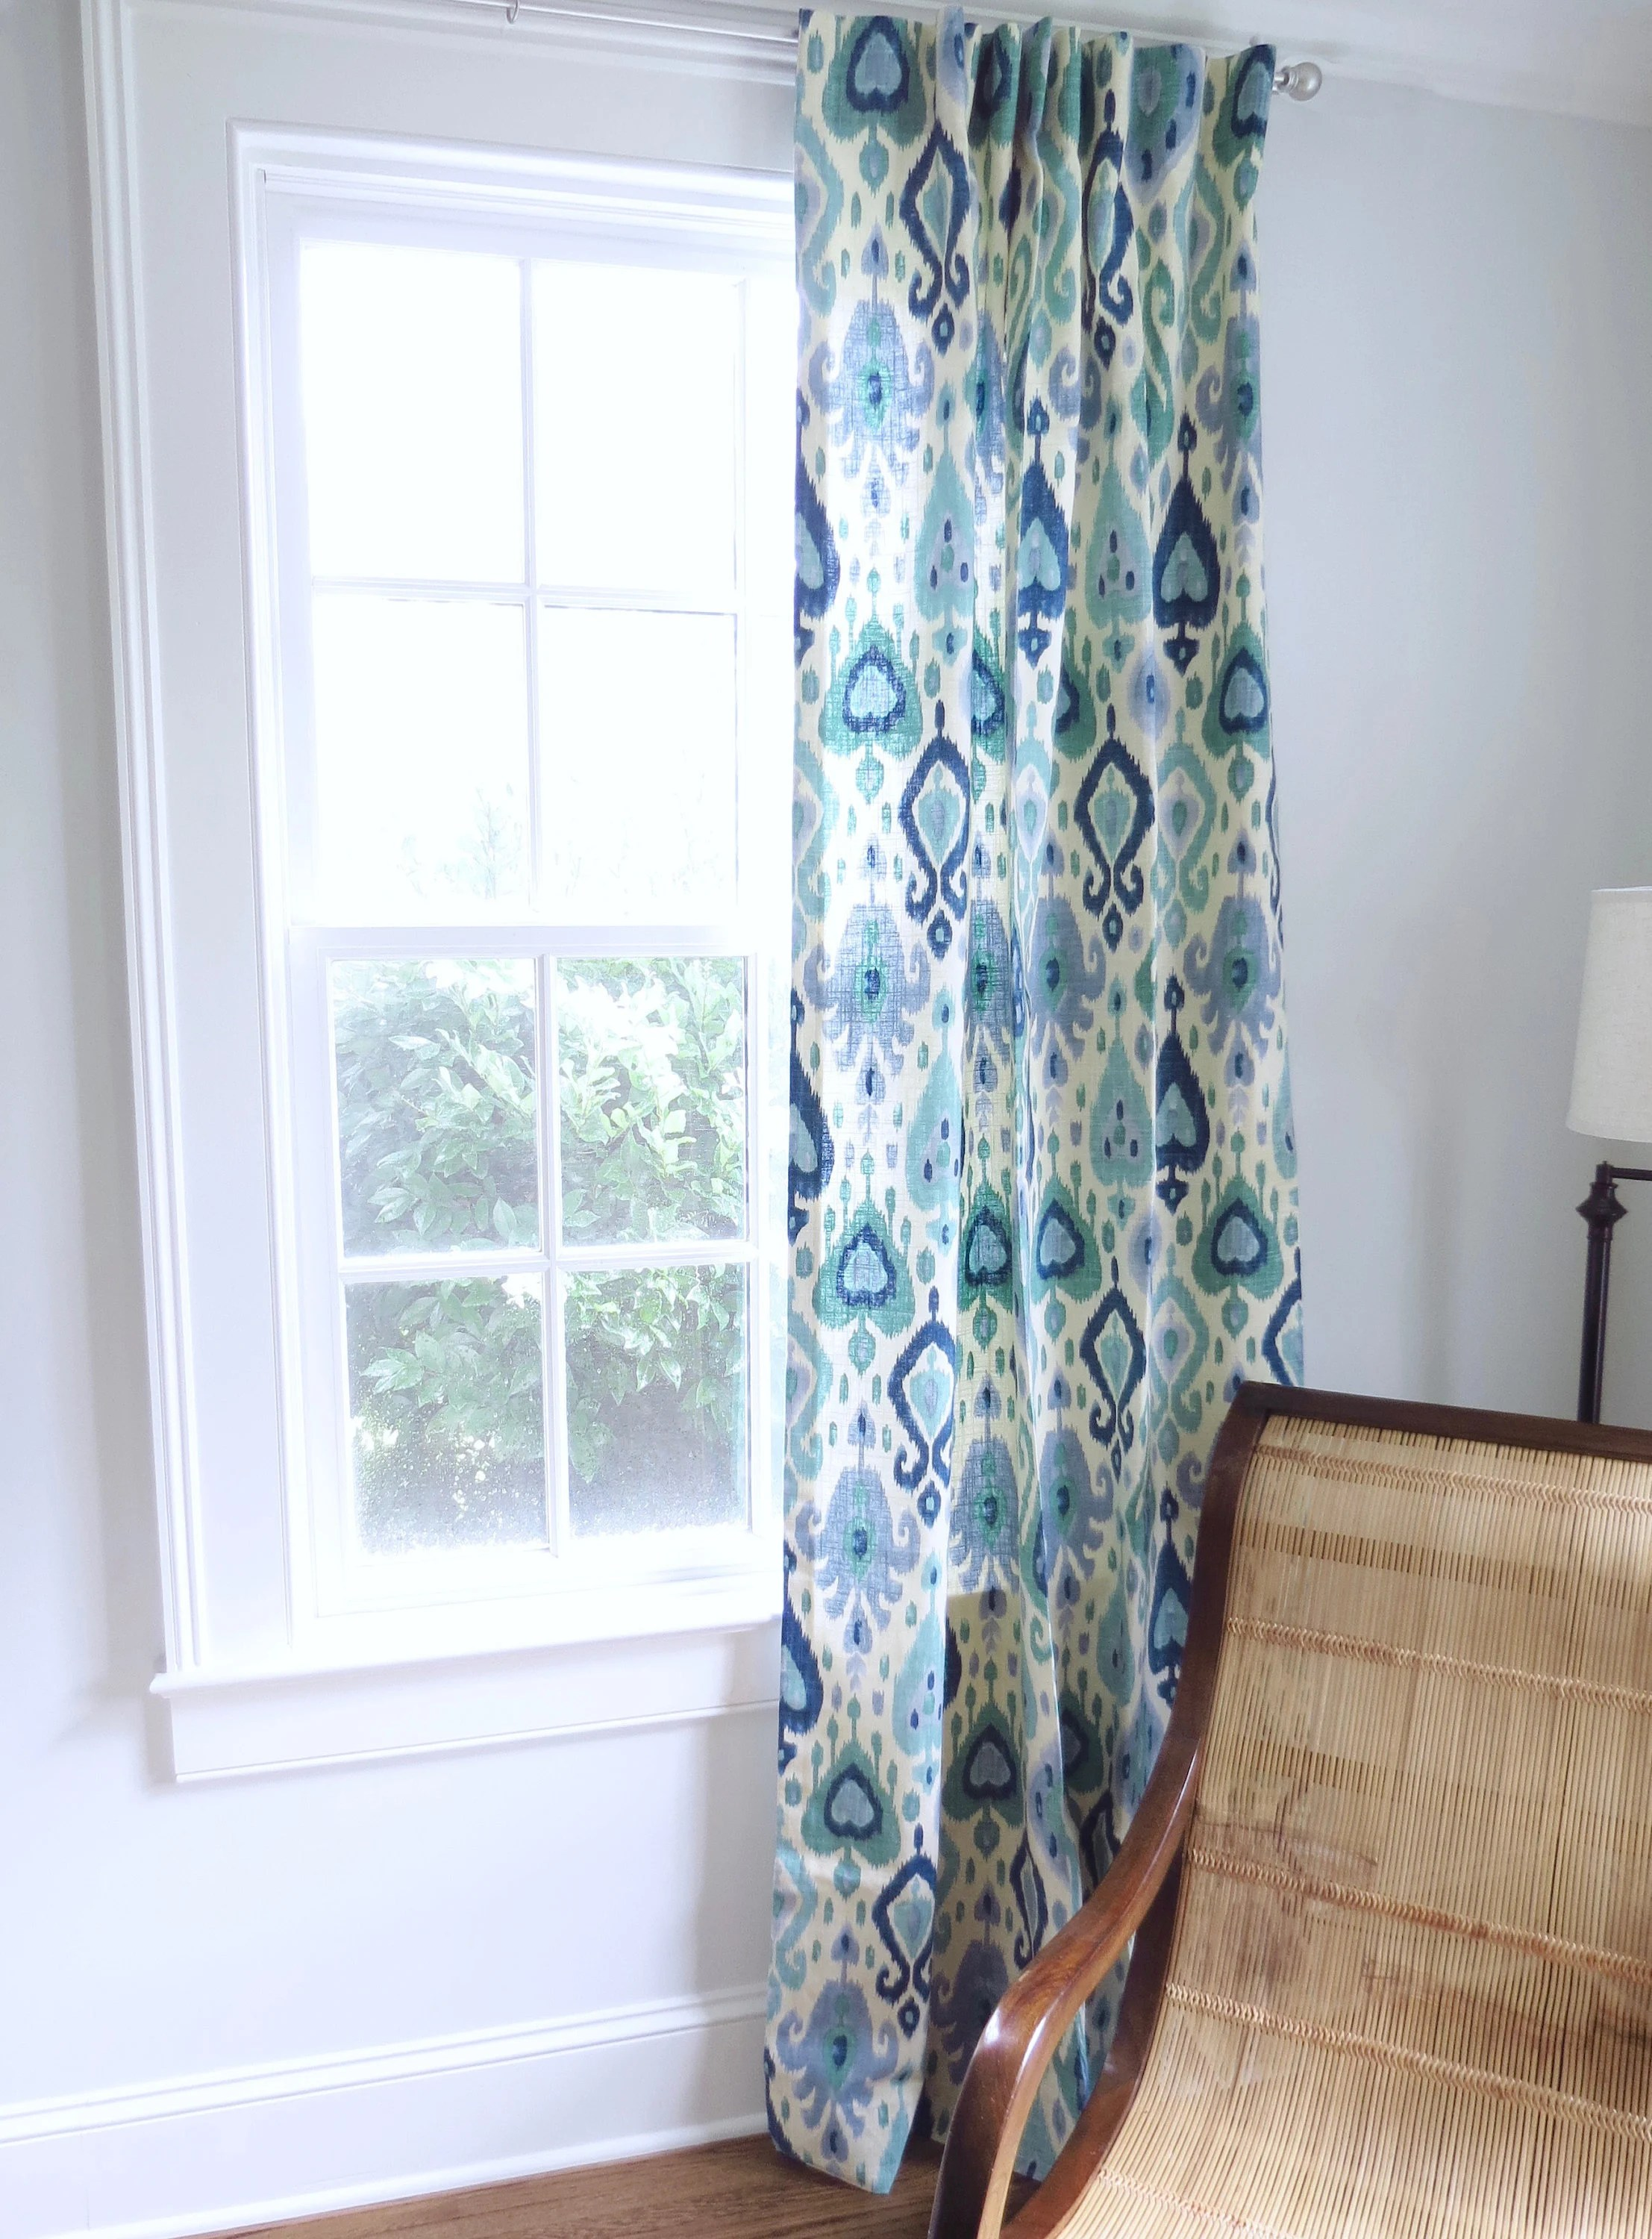 Curtains For A Blue Room Blue Green Curtains Ikat Curtains Blue Ikat Fabric Curtain Panels Blue Green Ikat Drapes Wide Ikat Curtains Long One Room Challenge Curtains